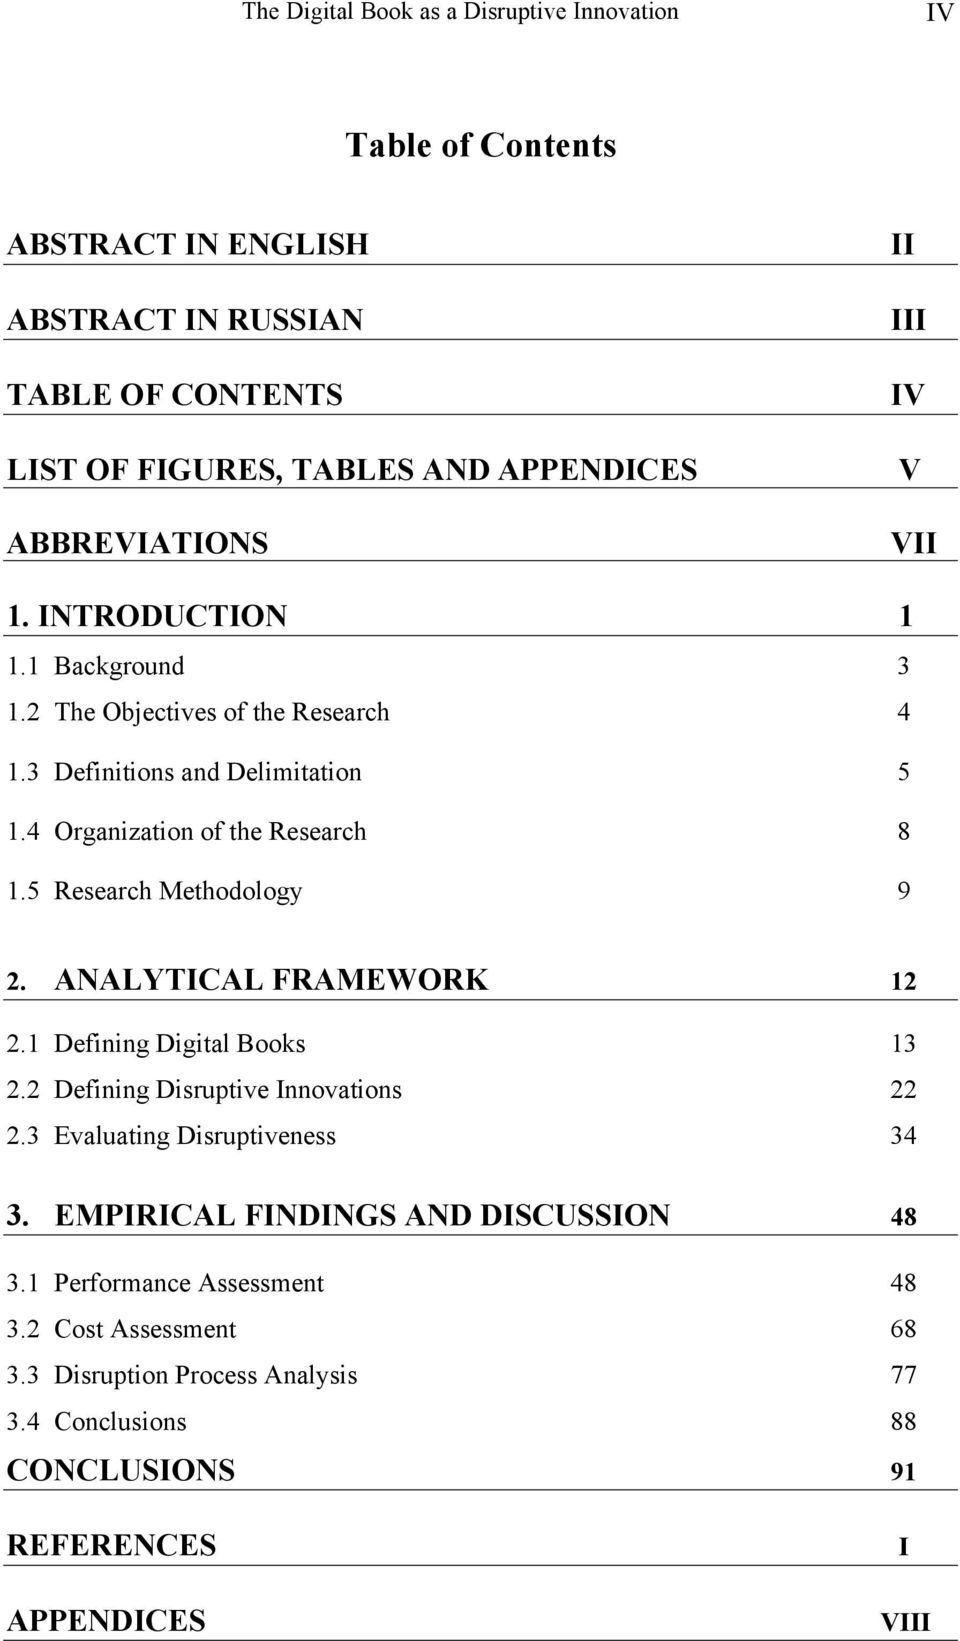 4 Organization of the Research 8 1.5 Research Methodology 9 2. ANALYTICAL FRAMEWORK 12 2.1 Defining Digital Books 13 2.2 Defining Disruptive Innovations 22 2.